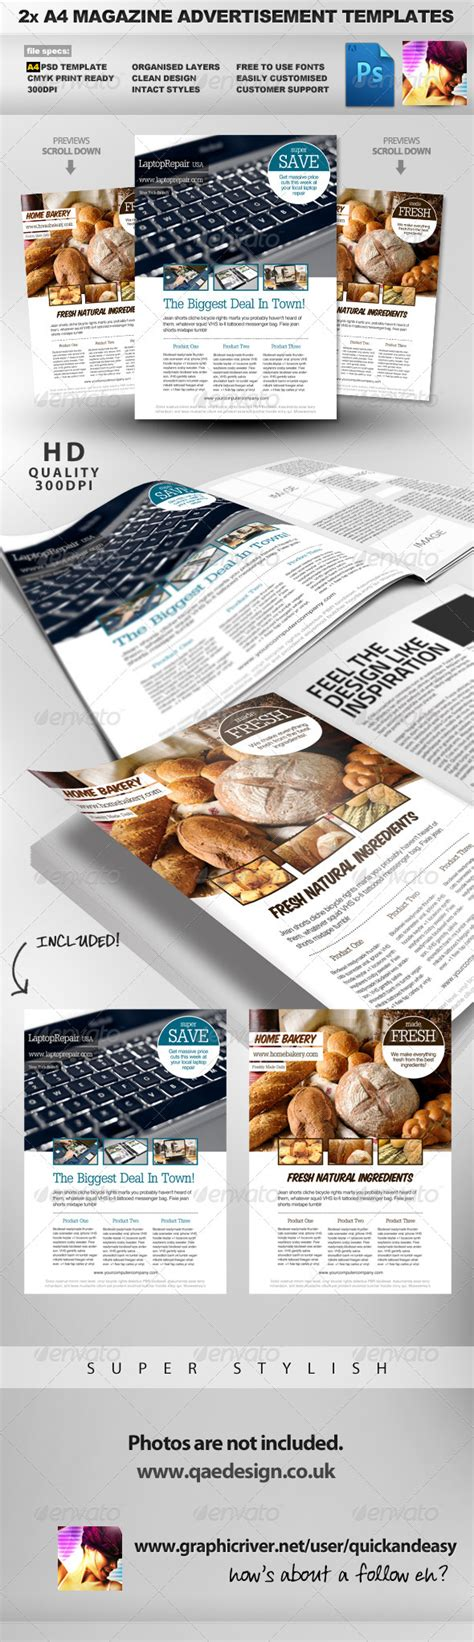 advertising magazine template 2 feature image a4 magazine ad layout by quickandeasy